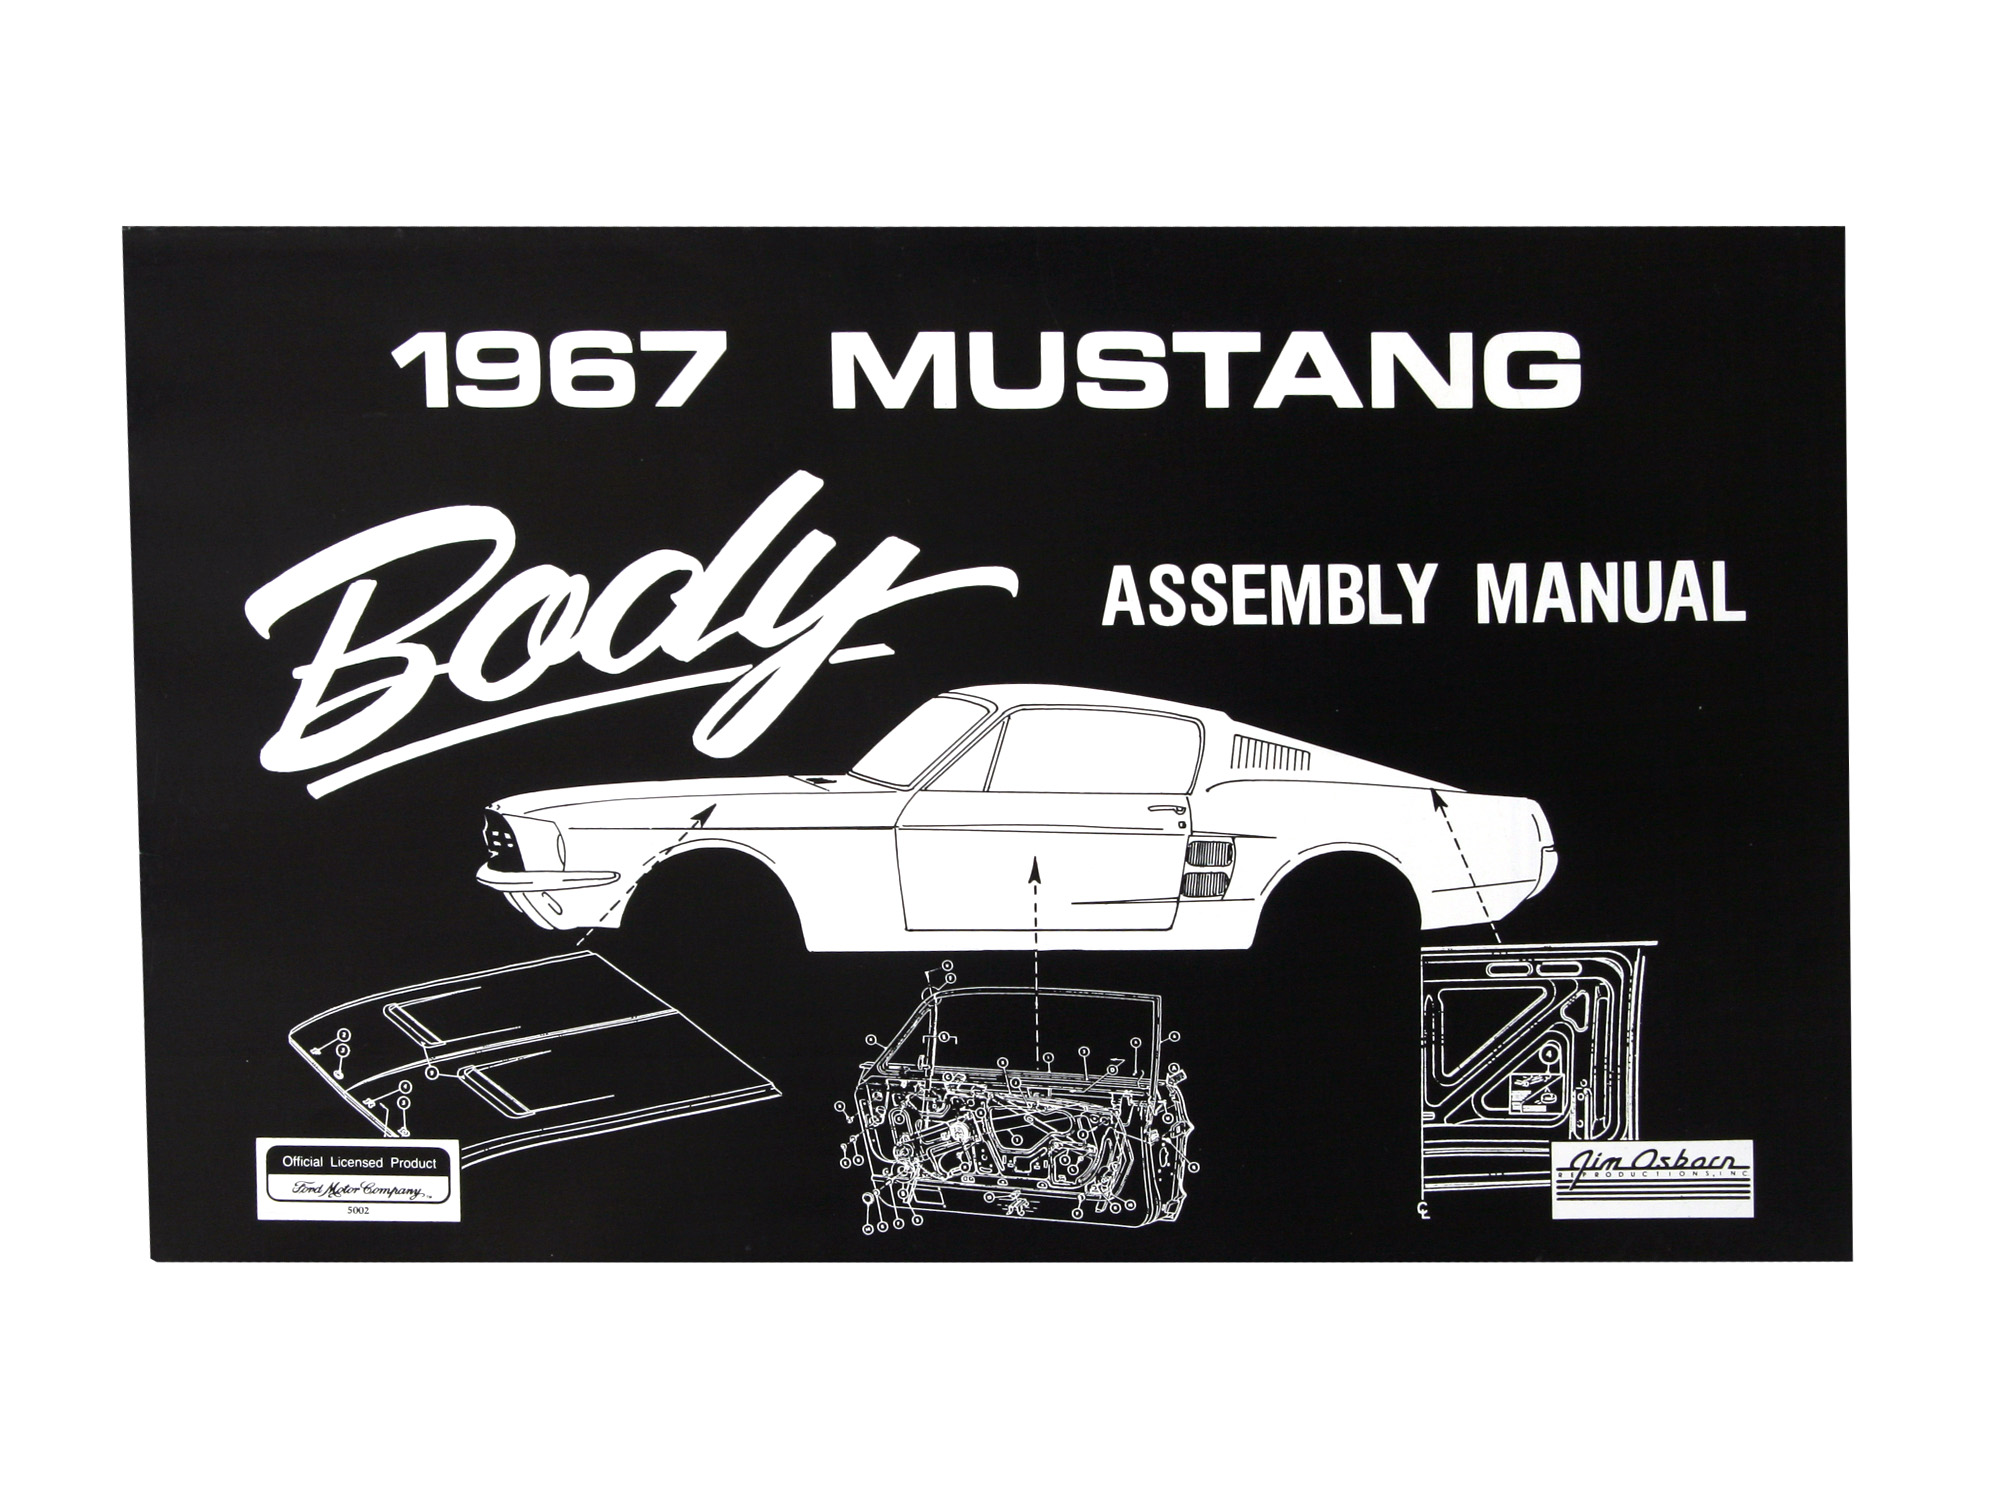 literature assembly owner s manuals 1967 body assembly manual rh harrysclassicsmustangparts com au 1967 mustang service manual 1967 ford mustang service manual